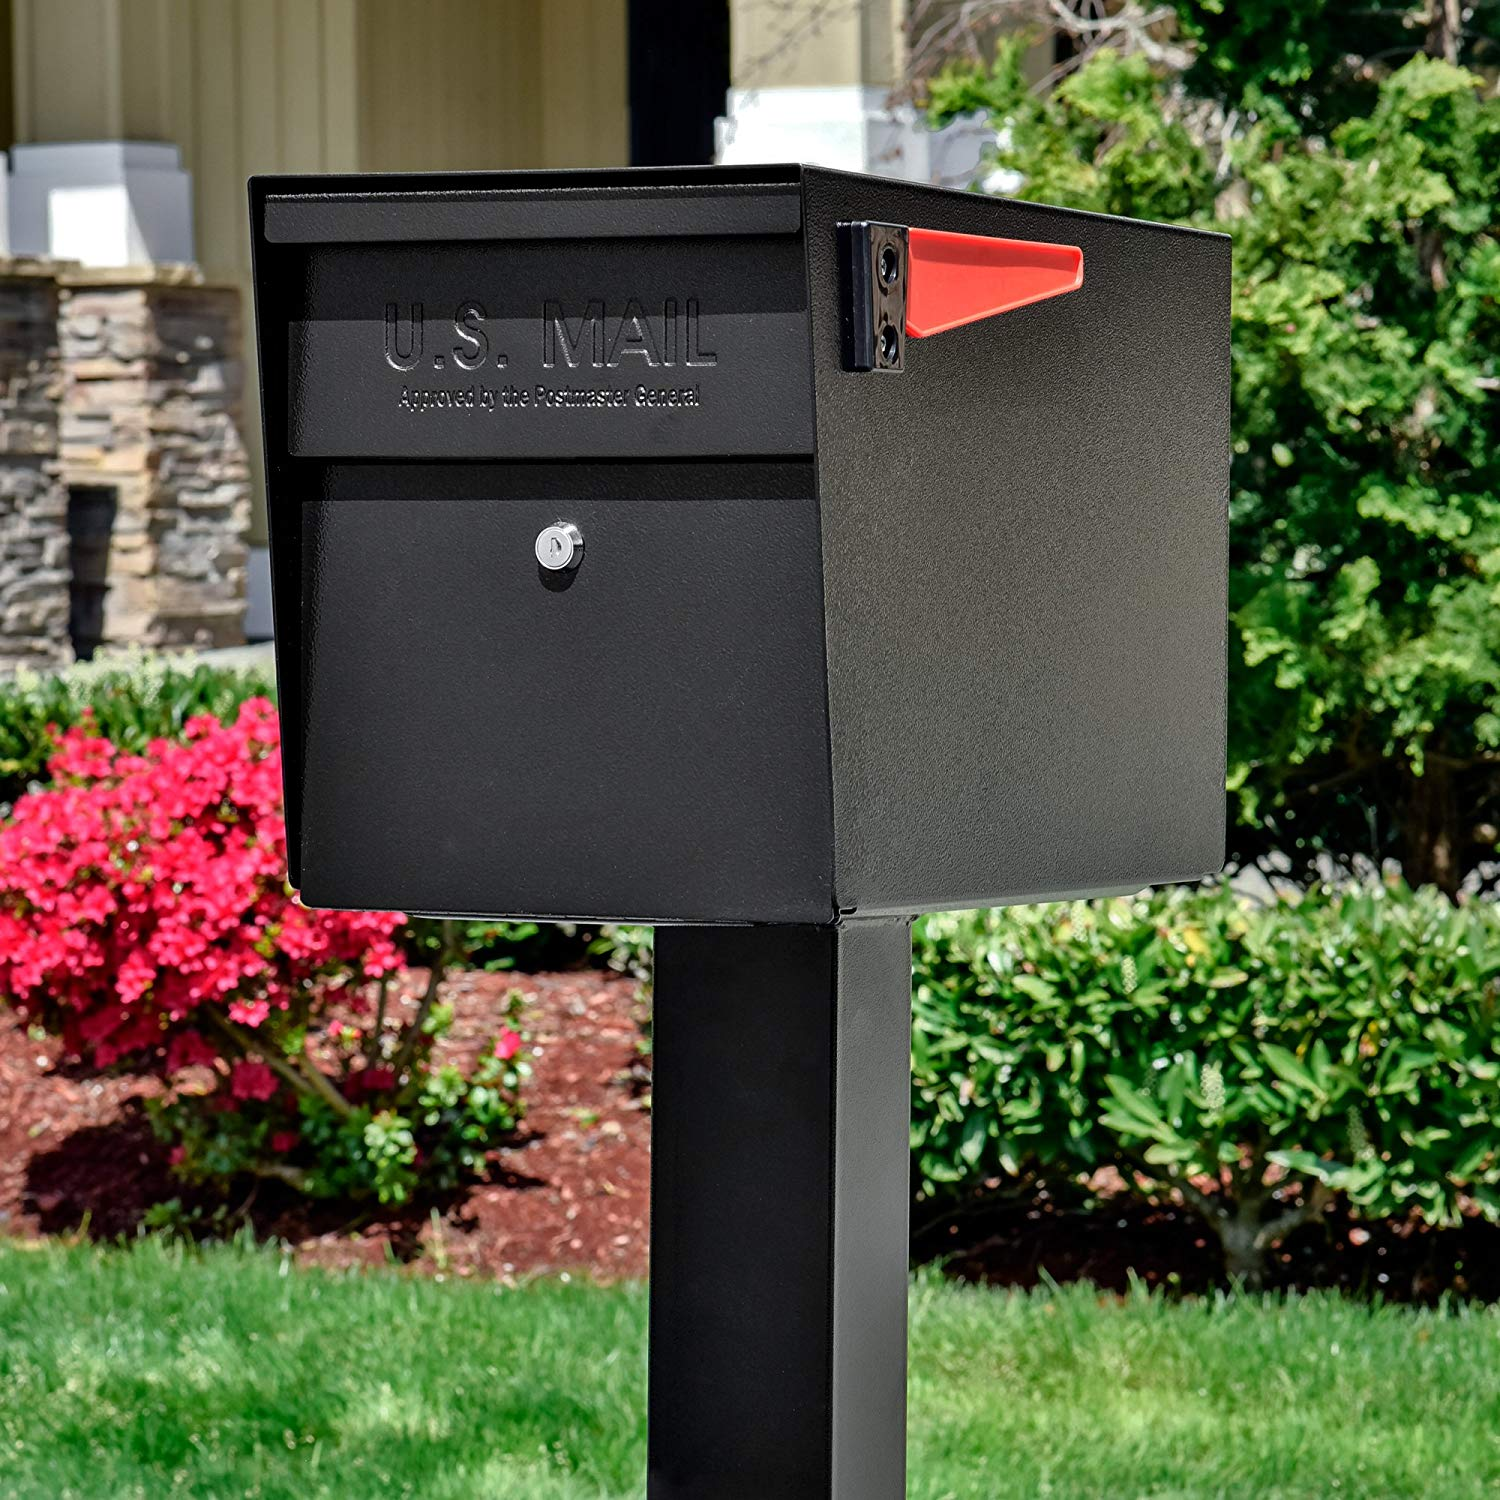 Top 5 best curbside mailbox in 2020 review - A Best Pro